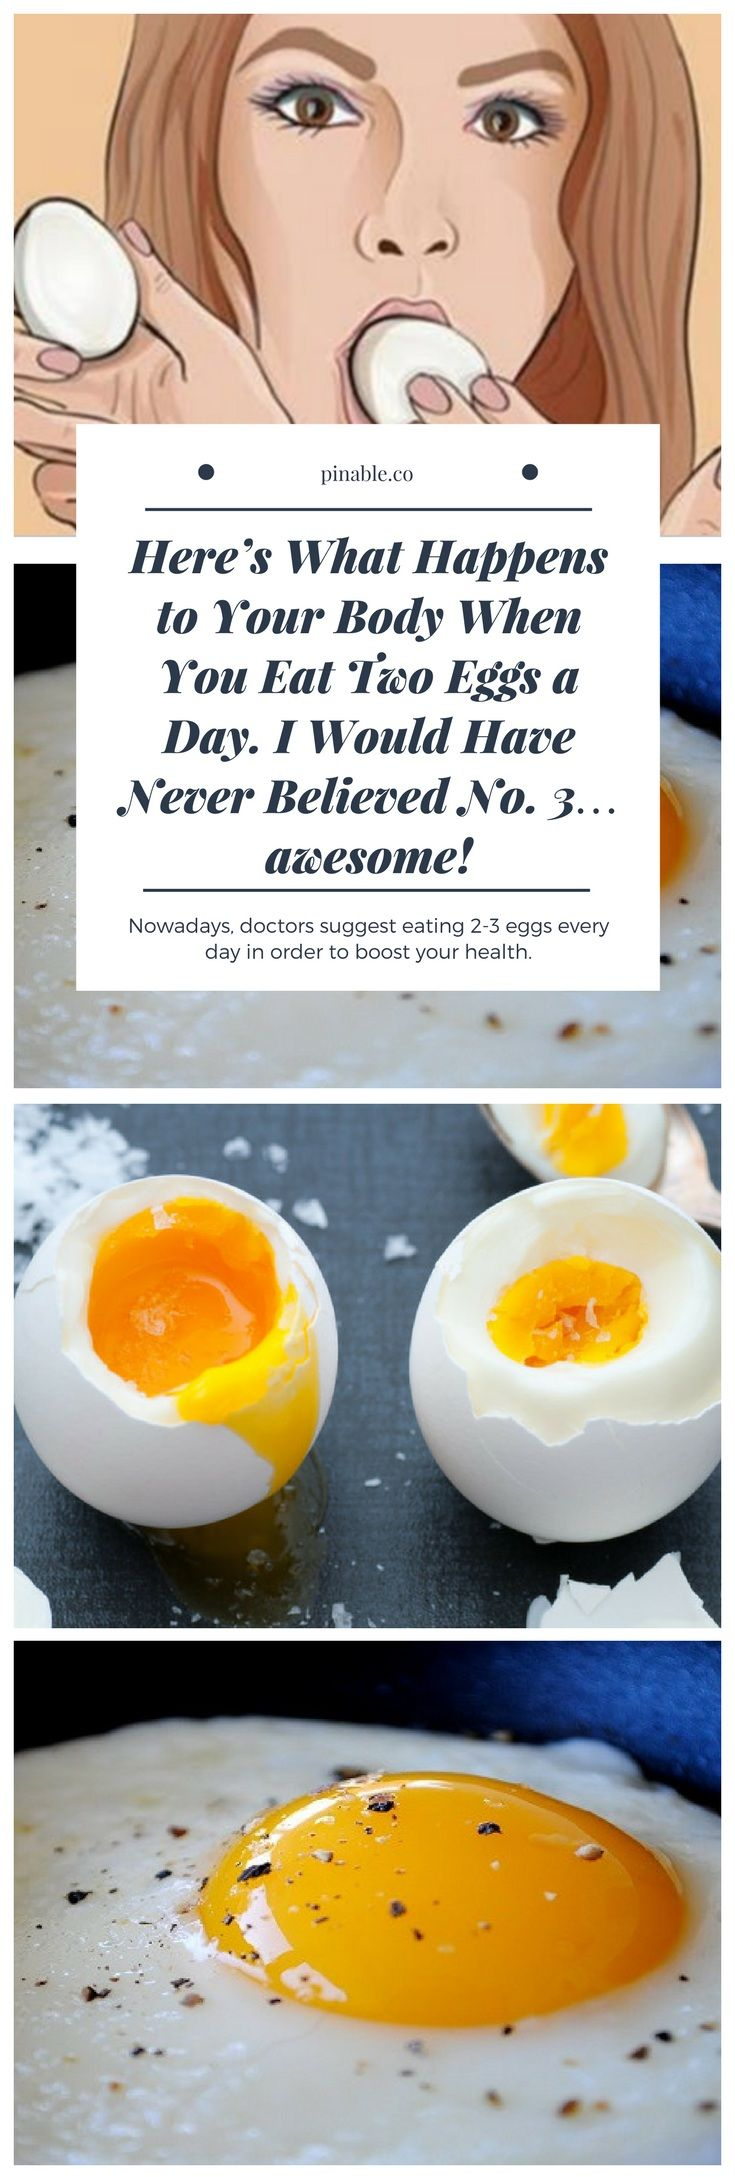 Heres What Happens to Your Body When You Eat Two Eggs a Day. I Would Have Never Believed No. 3 awesome!